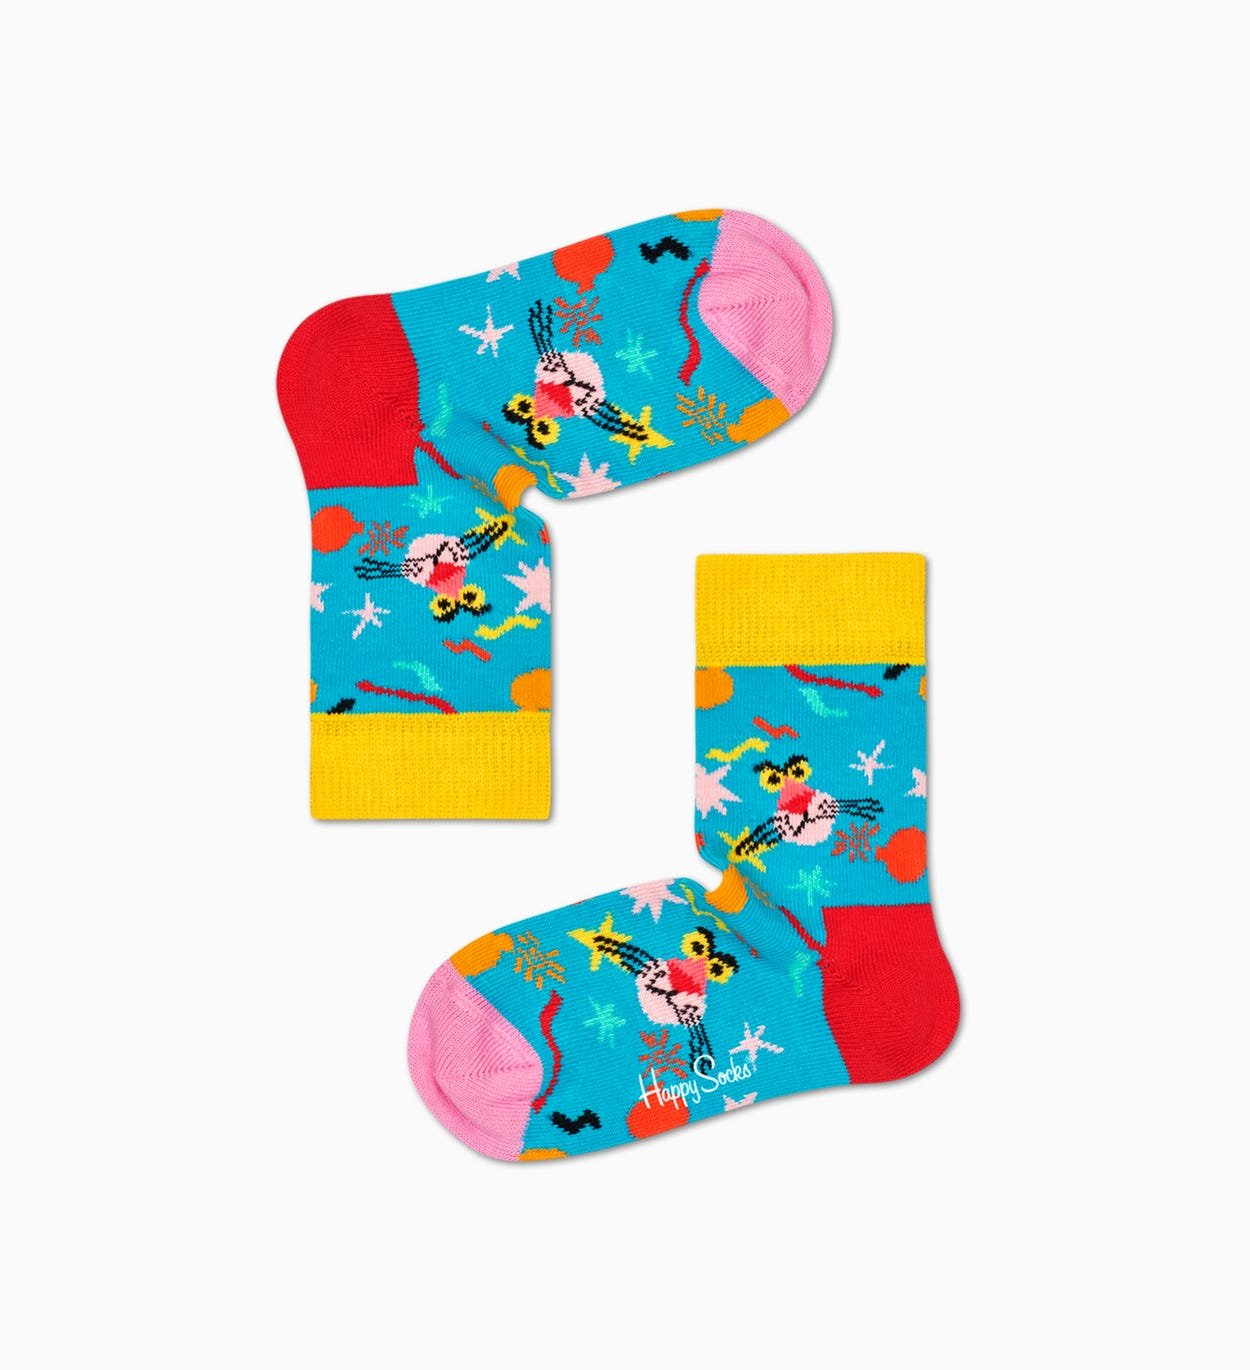 Happy Socks x Pink Panther:   영유아용 양말